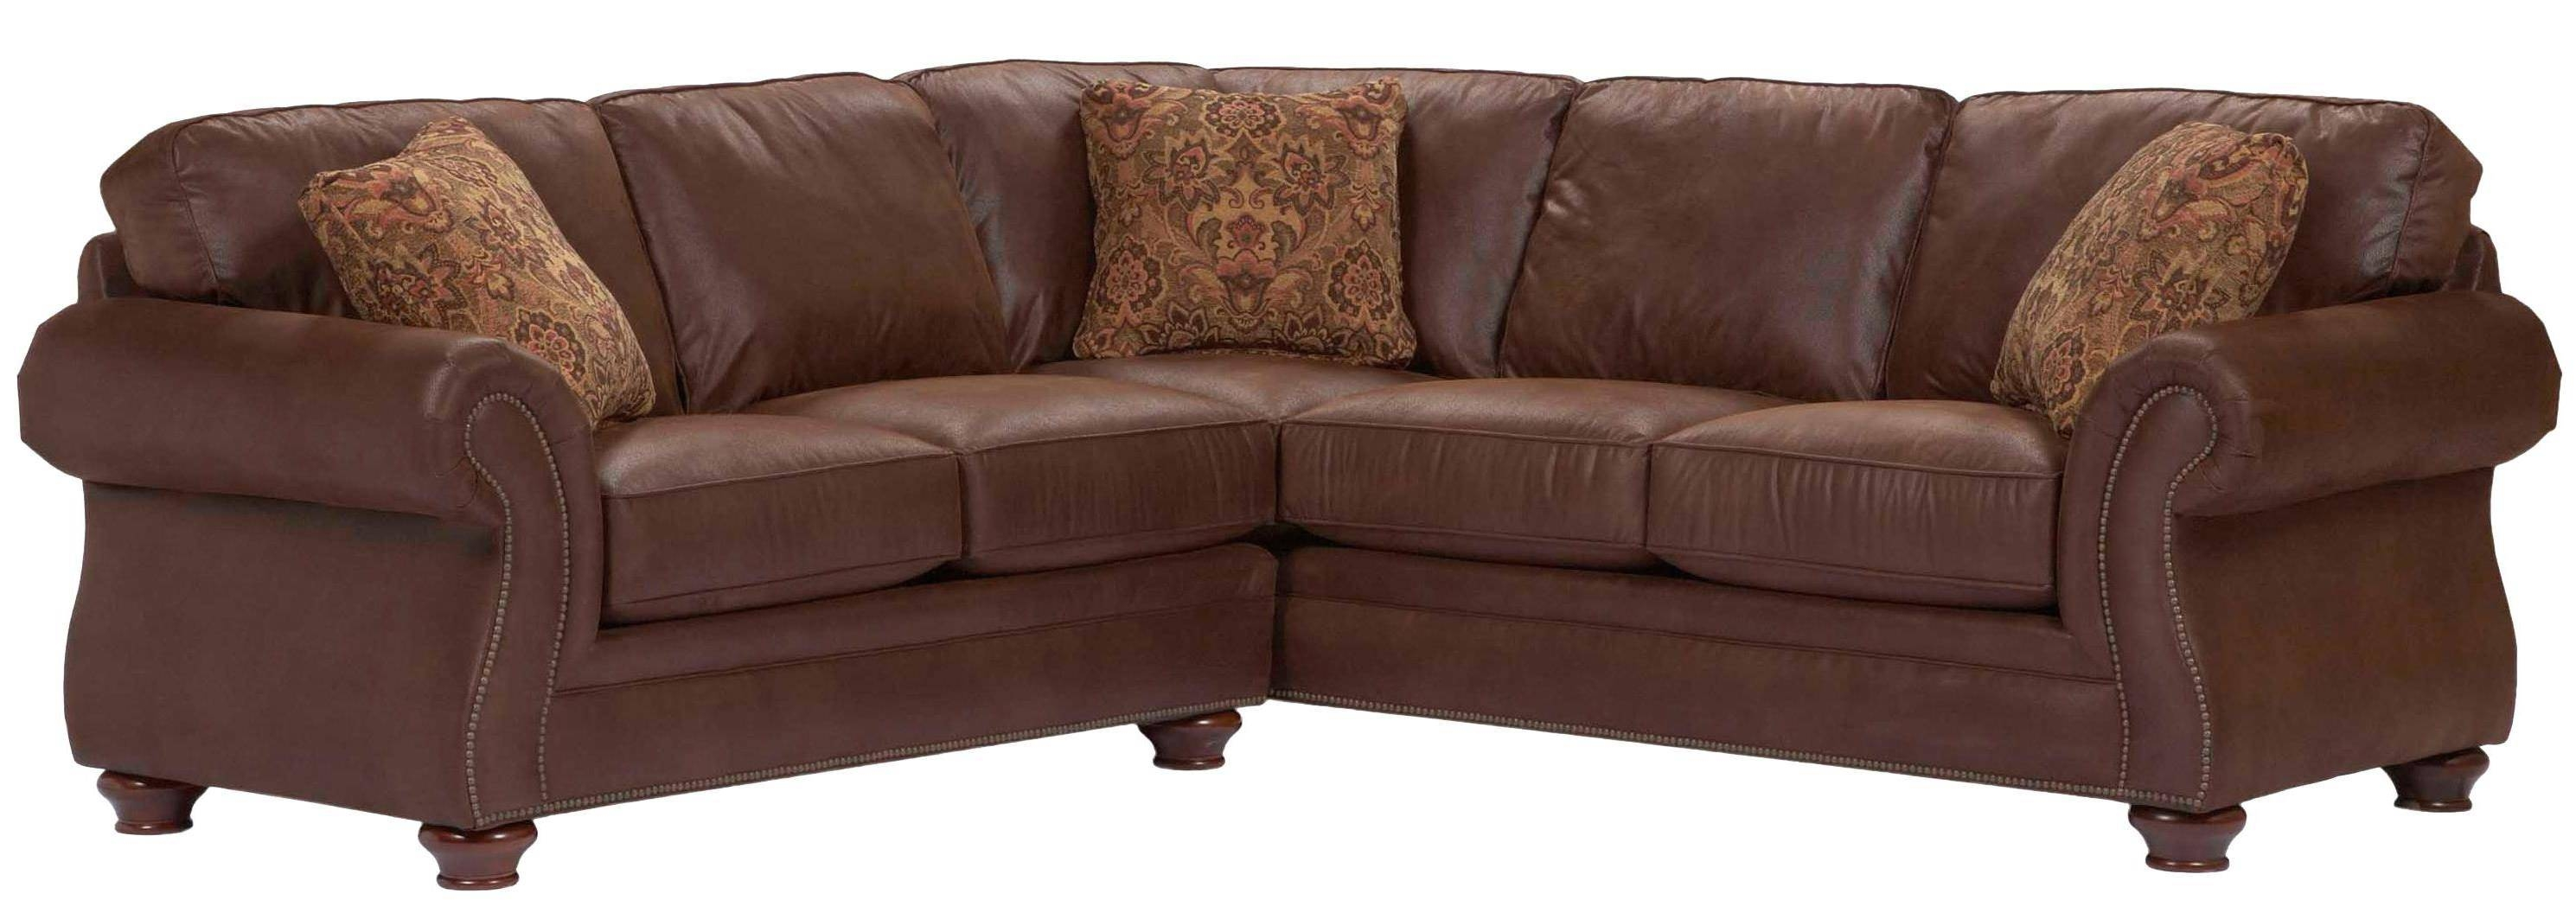 Broyhill Furniture Laramie 2 Piece Corner Sectional Sofa - Lindy's pertaining to Broyhill Sectional Sofa (Image 5 of 30)